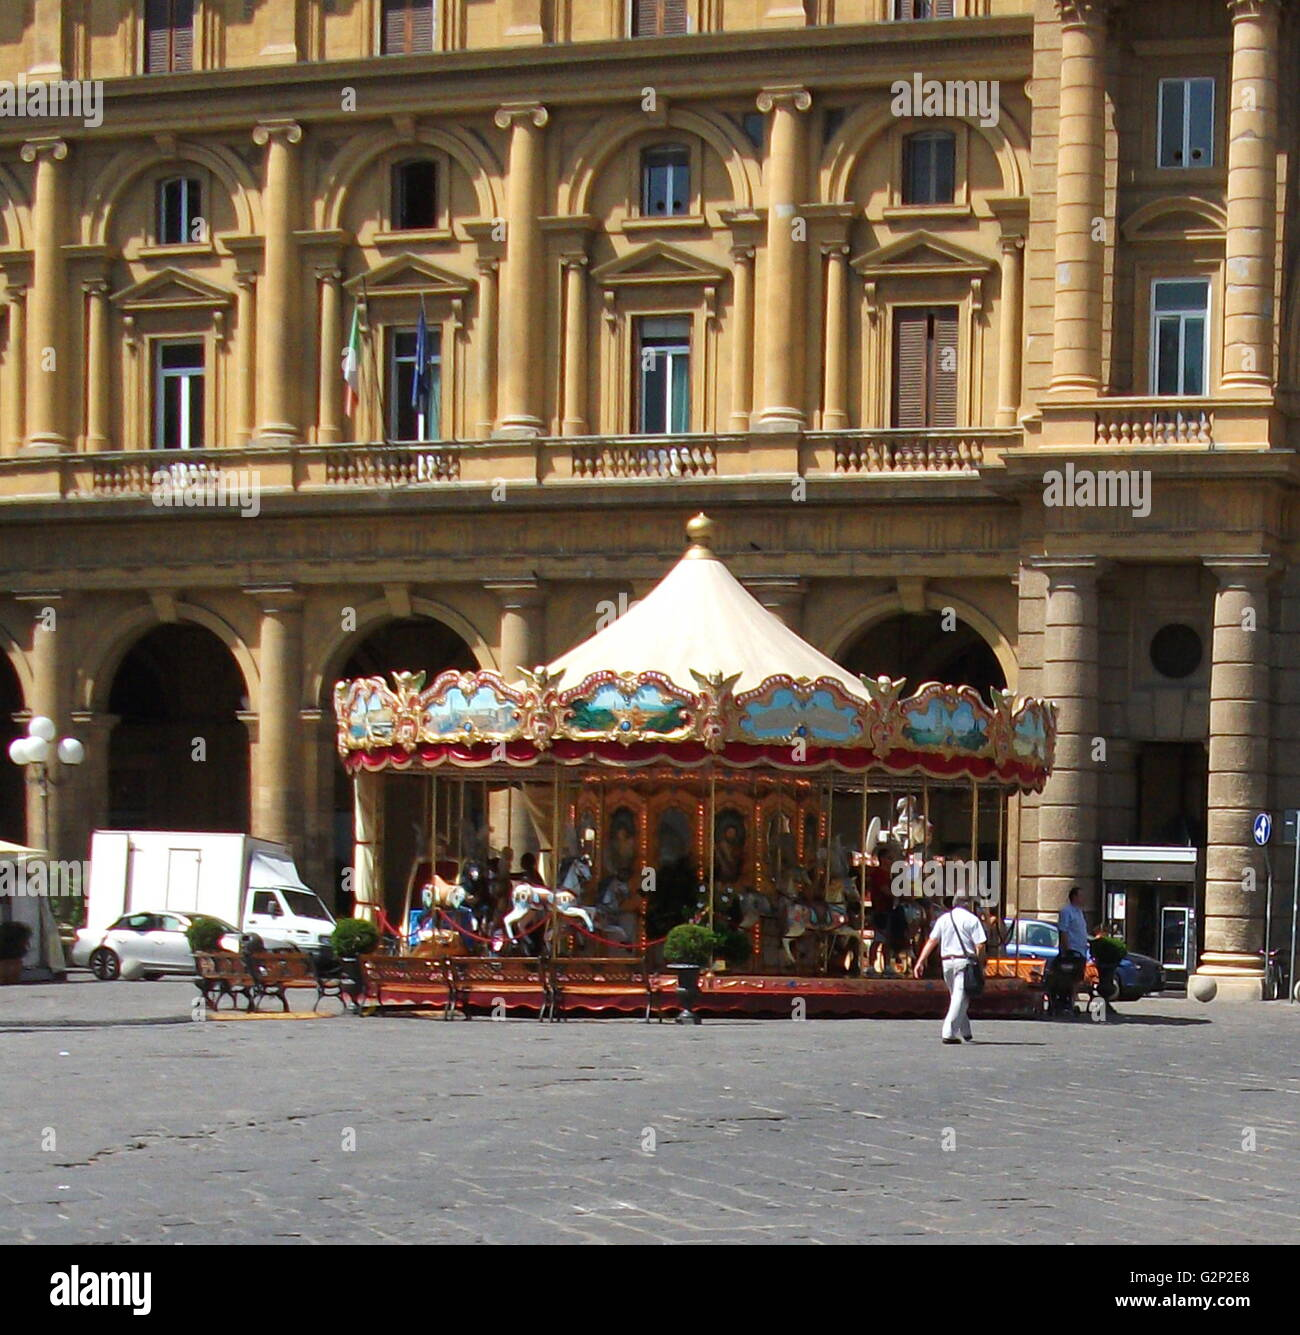 An antique carnival carousel in the middle of a plaza in Florence, Italy. - Stock Image